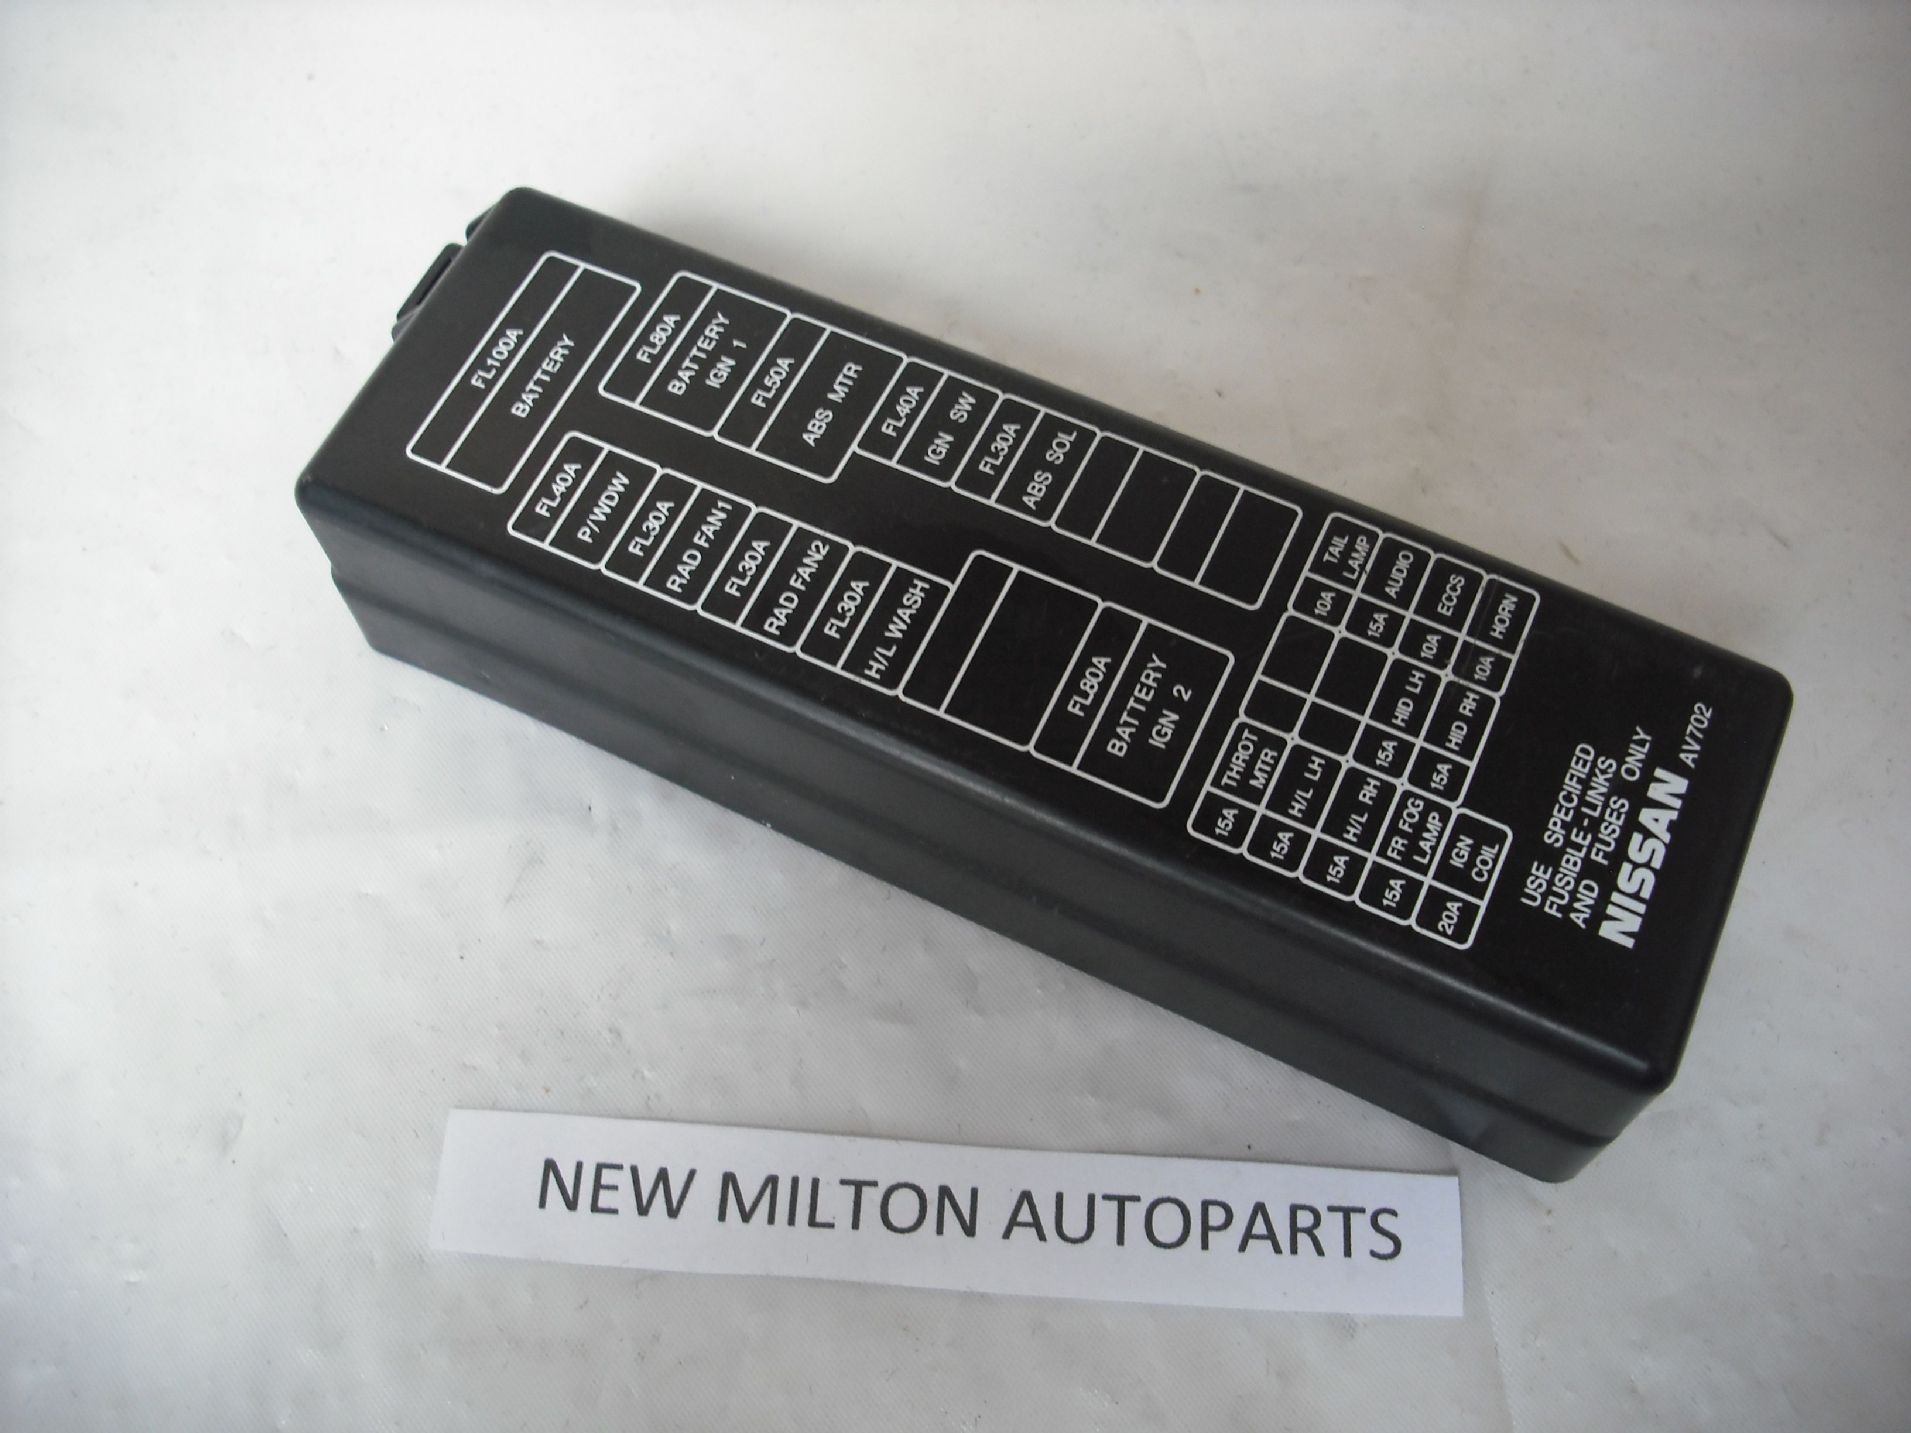 nissan primera p12 engine bay fuse box cover lid 2134 p nissan primera p12 engine bay fuse box cover lid fuse box lid at mifinder.co